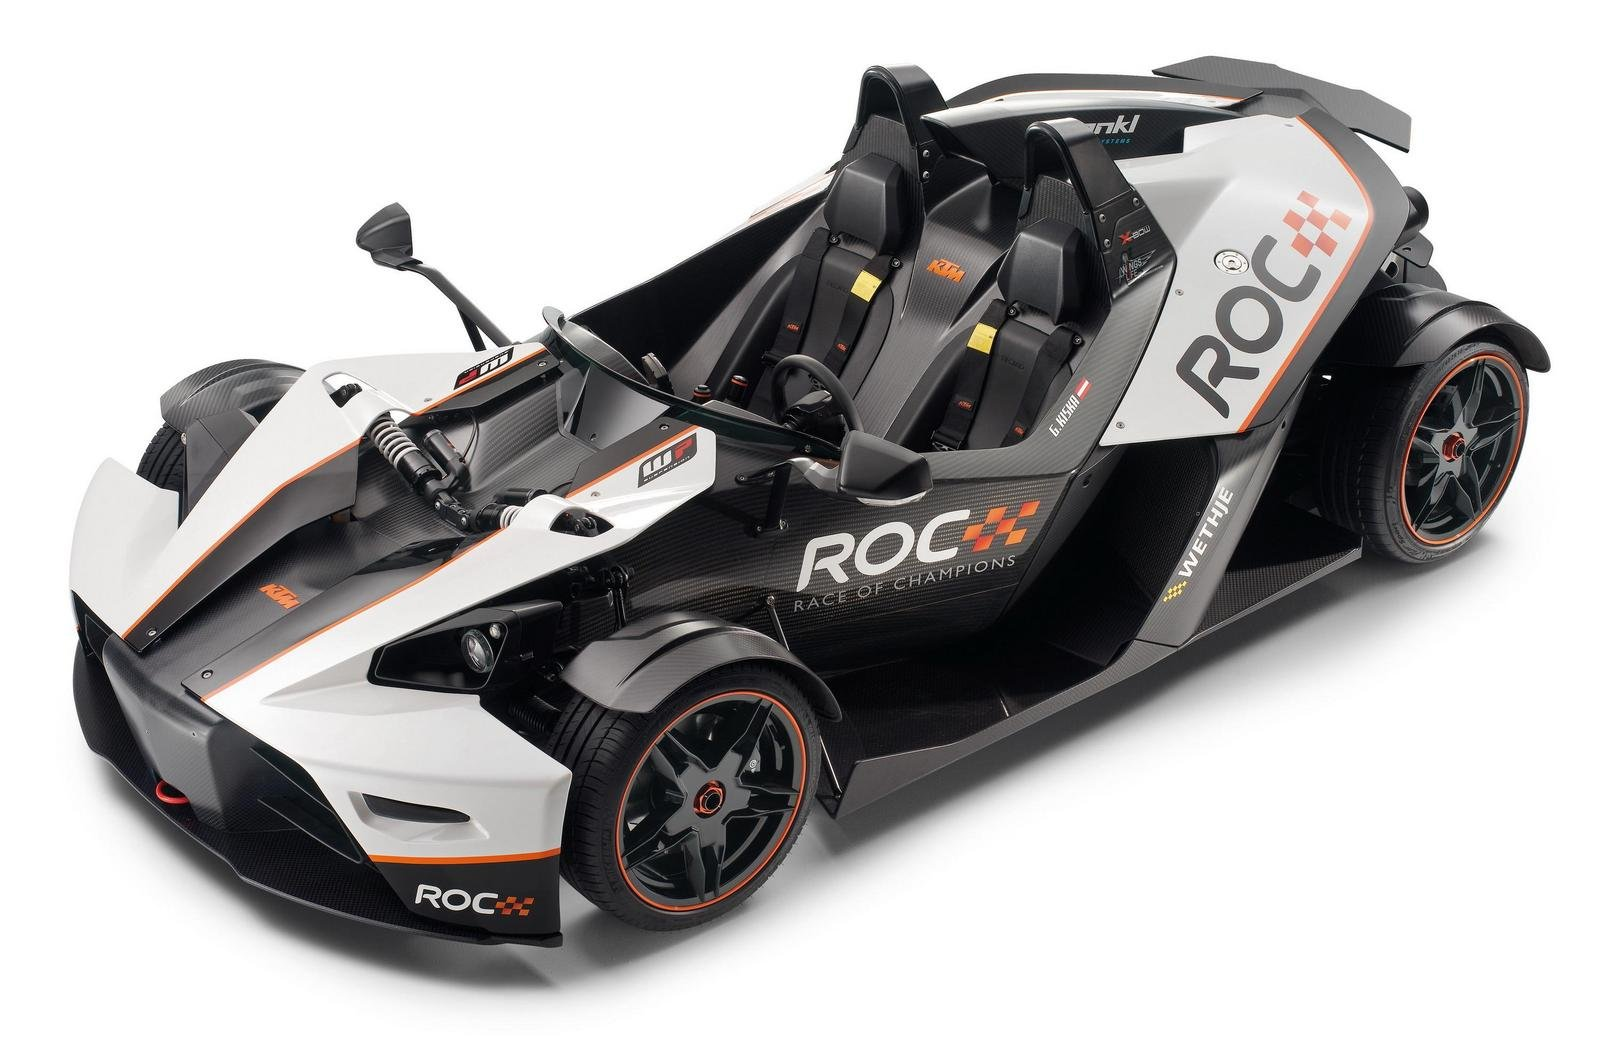 2009 ktm x bow roc picture 289003 car review top speed. Black Bedroom Furniture Sets. Home Design Ideas